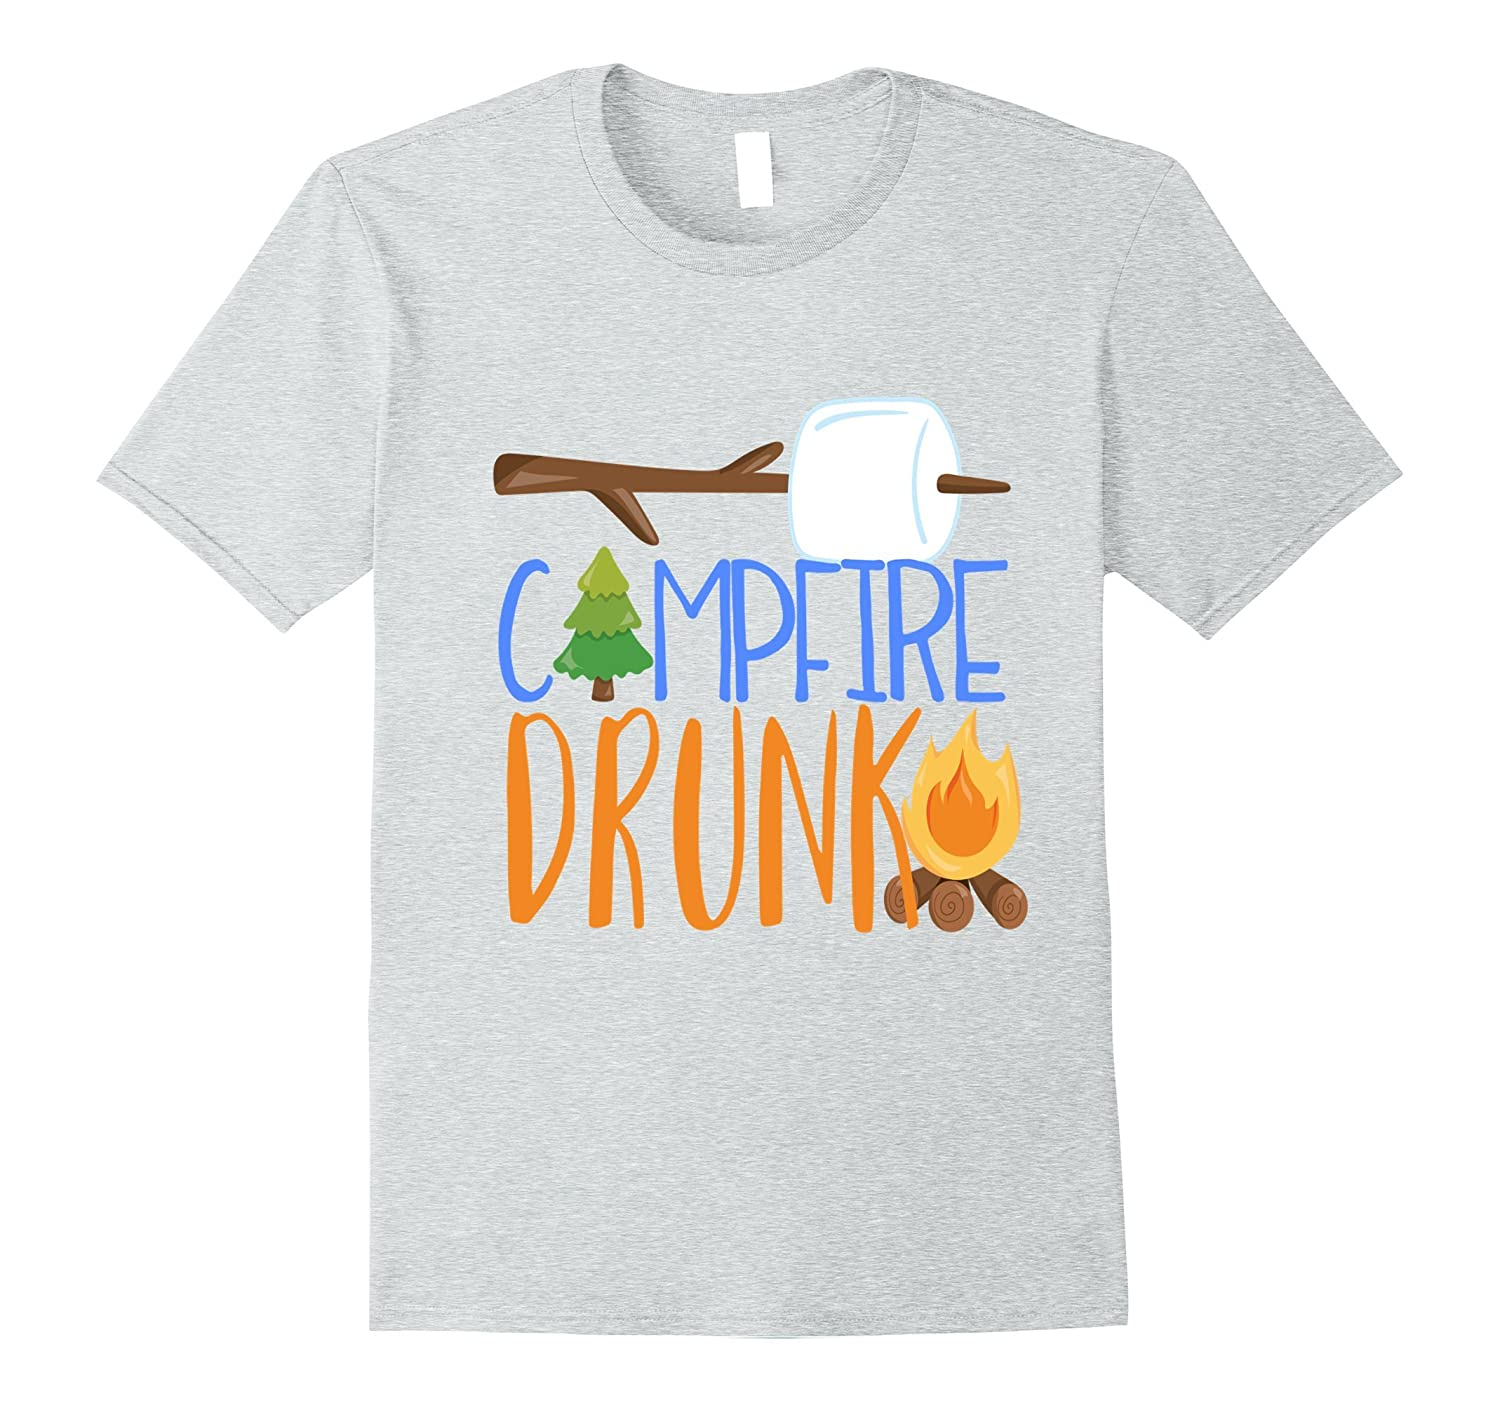 ab3b12c638e3 Campfire Drunk Funny Camping Shirt Camp Camper Glamping Beer – Hntee.com